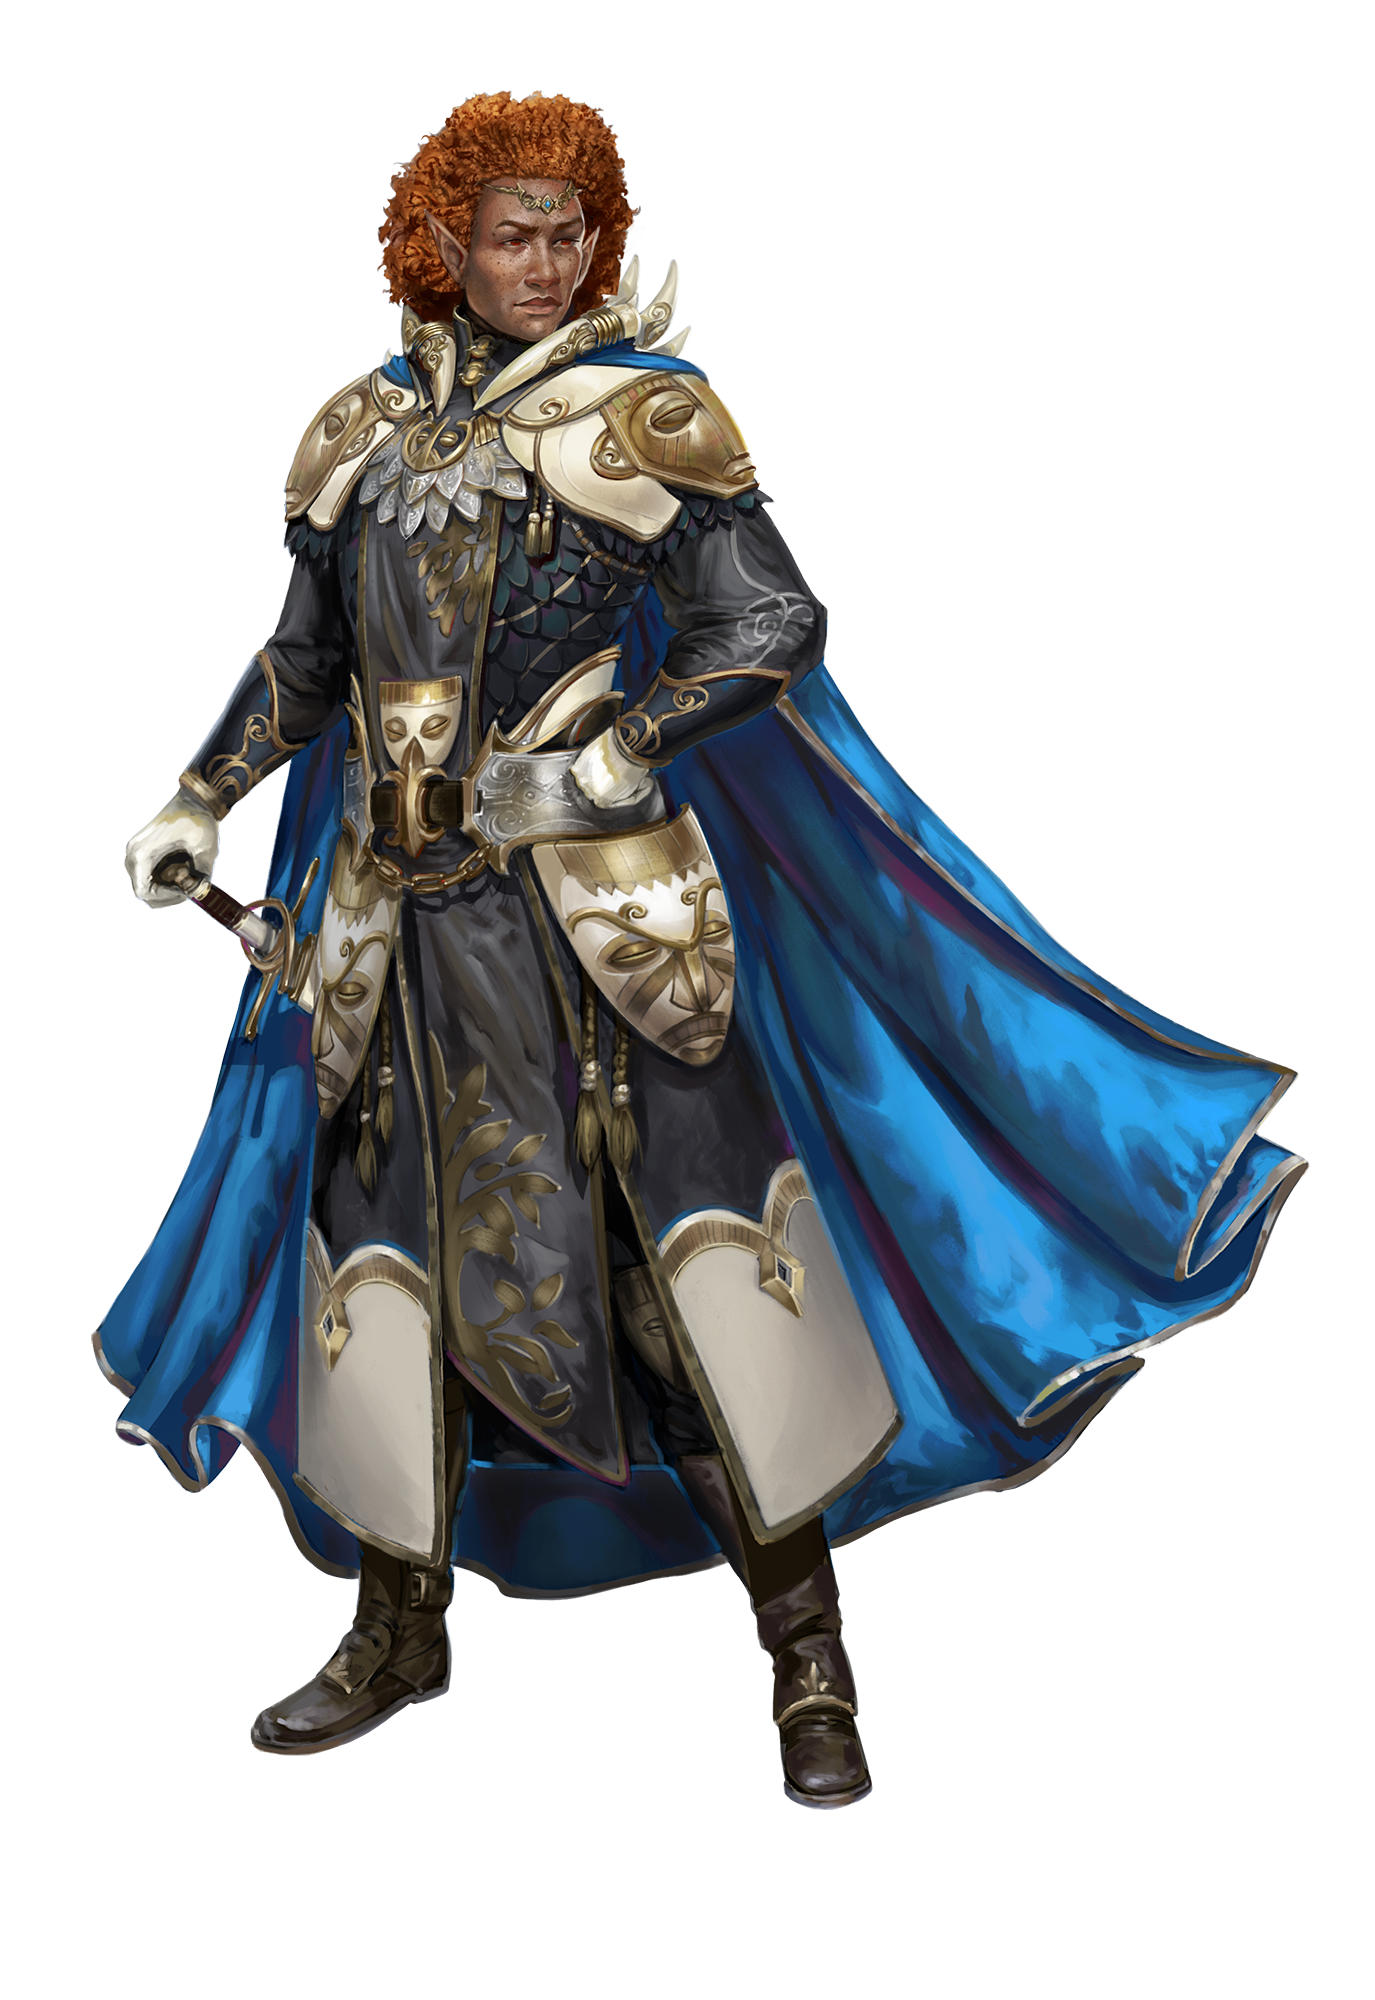 Art by Mirco Paganessi. A half elf man wearing brilliant armor with several mask accessories and a flowing cape